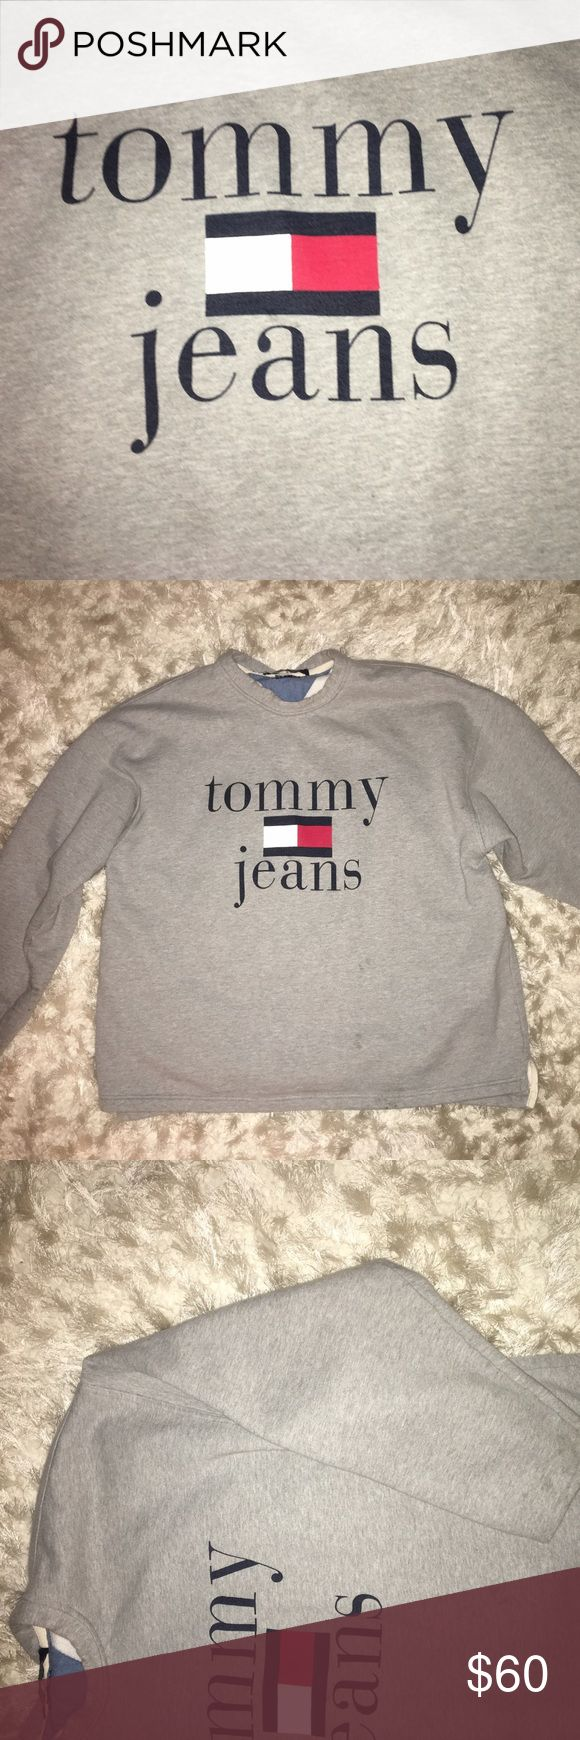 """Tommy Hilfiger Sweatshirt Worn once Tommy Hilfiger Sweatshirt """"Tommy Jeans"""" cozy and cute and stylish and fits everyone Tommy Hilfiger Jackets & Coats"""